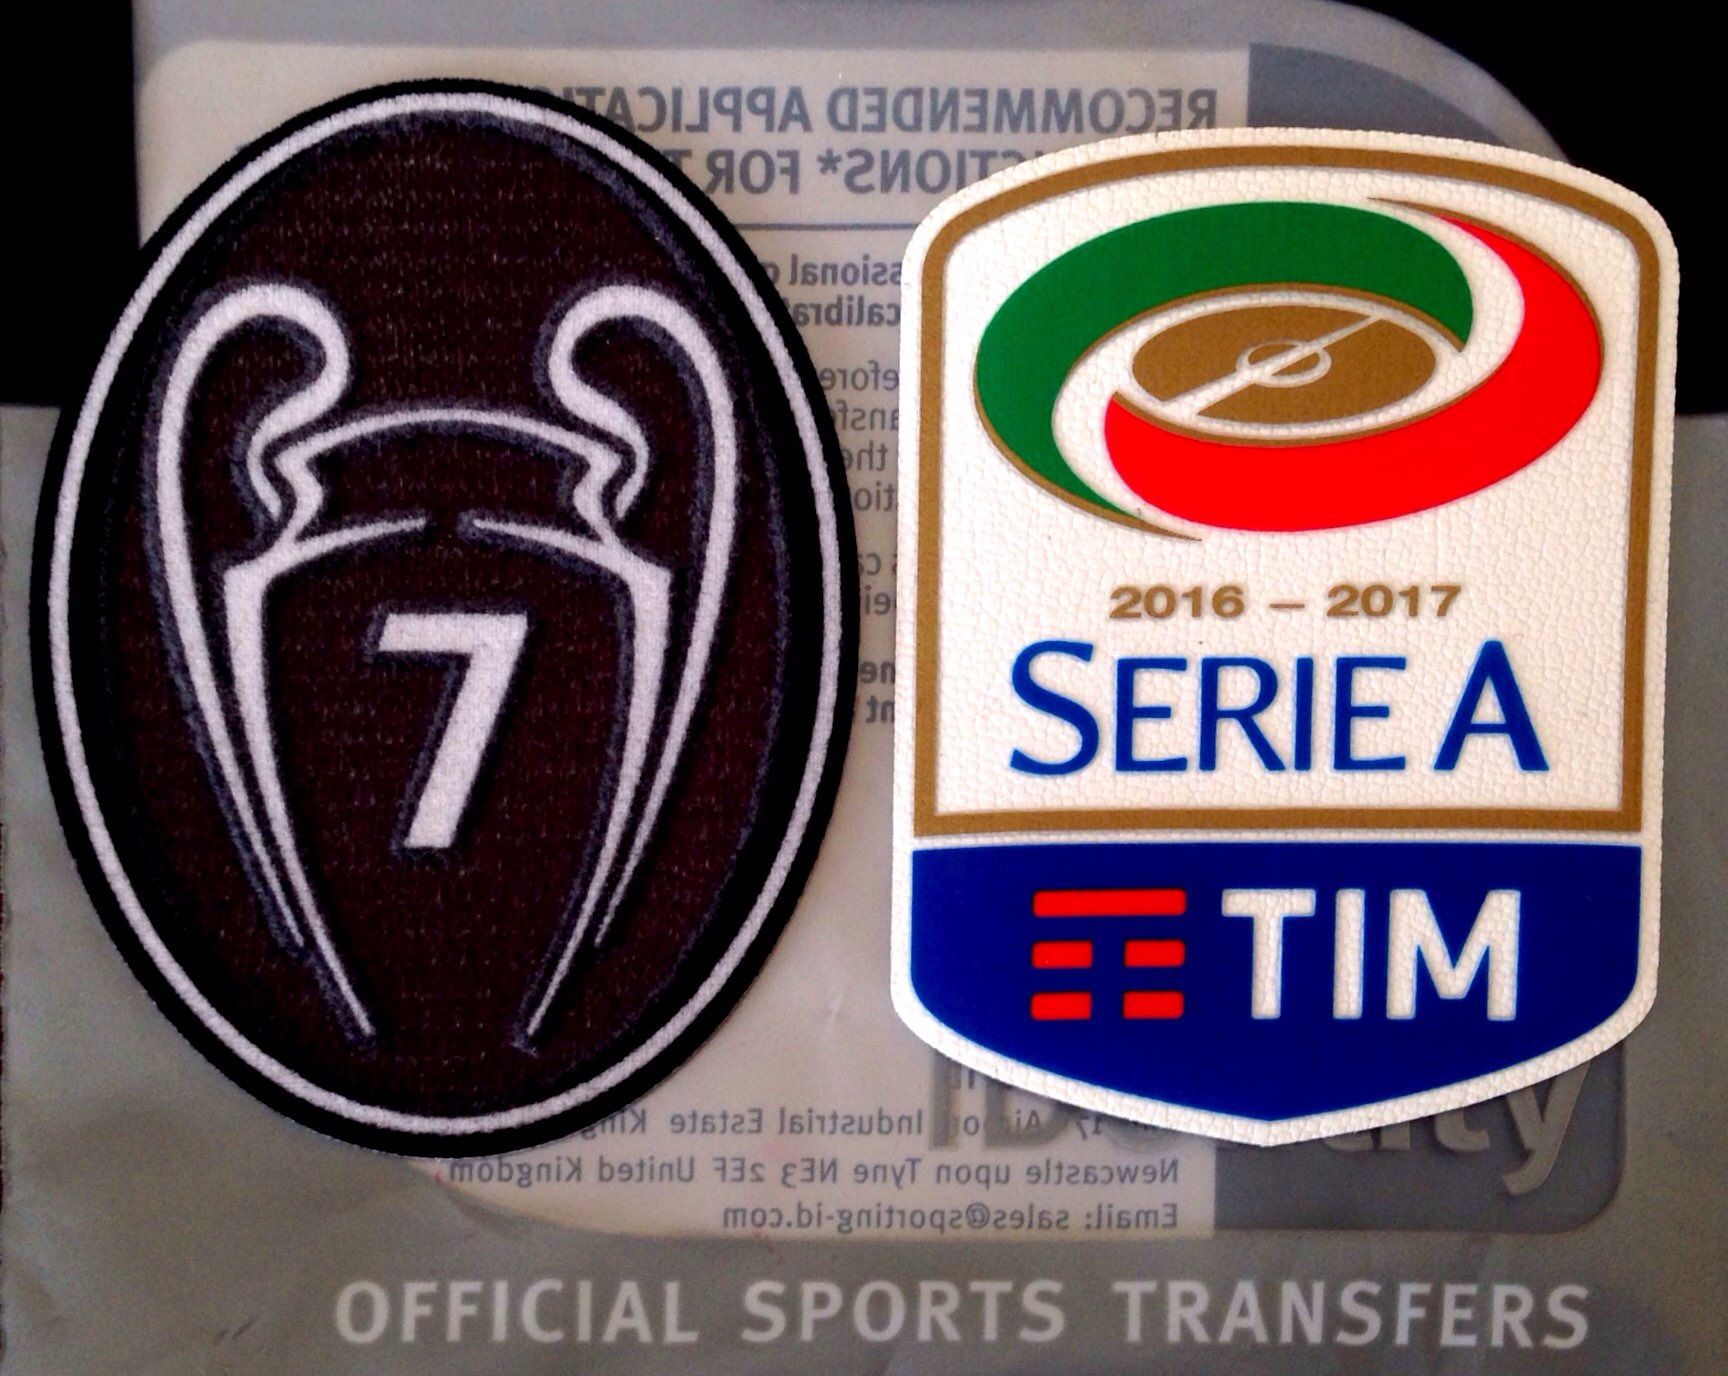 201617 ac milan serie a amp ucl boh 7 champions official